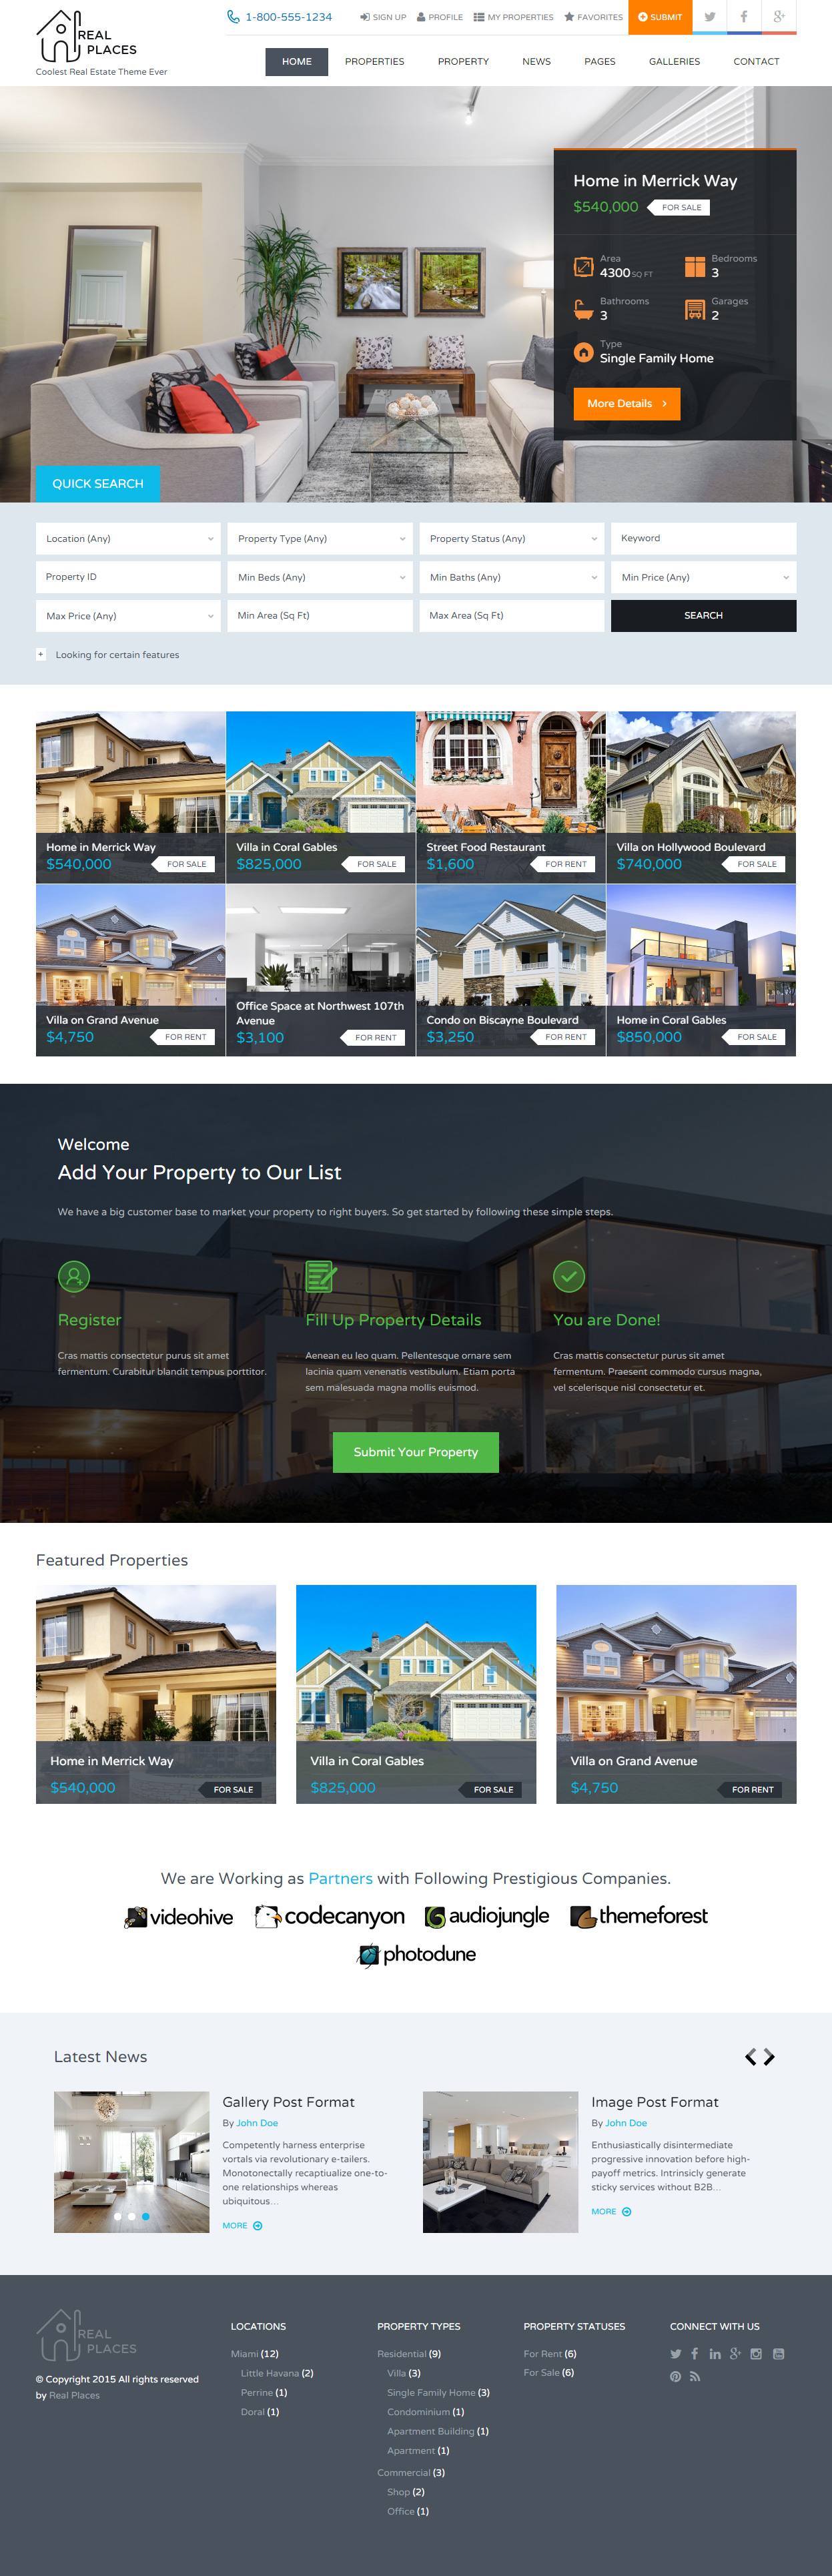 Real Places is Premium Responsive Real Estate